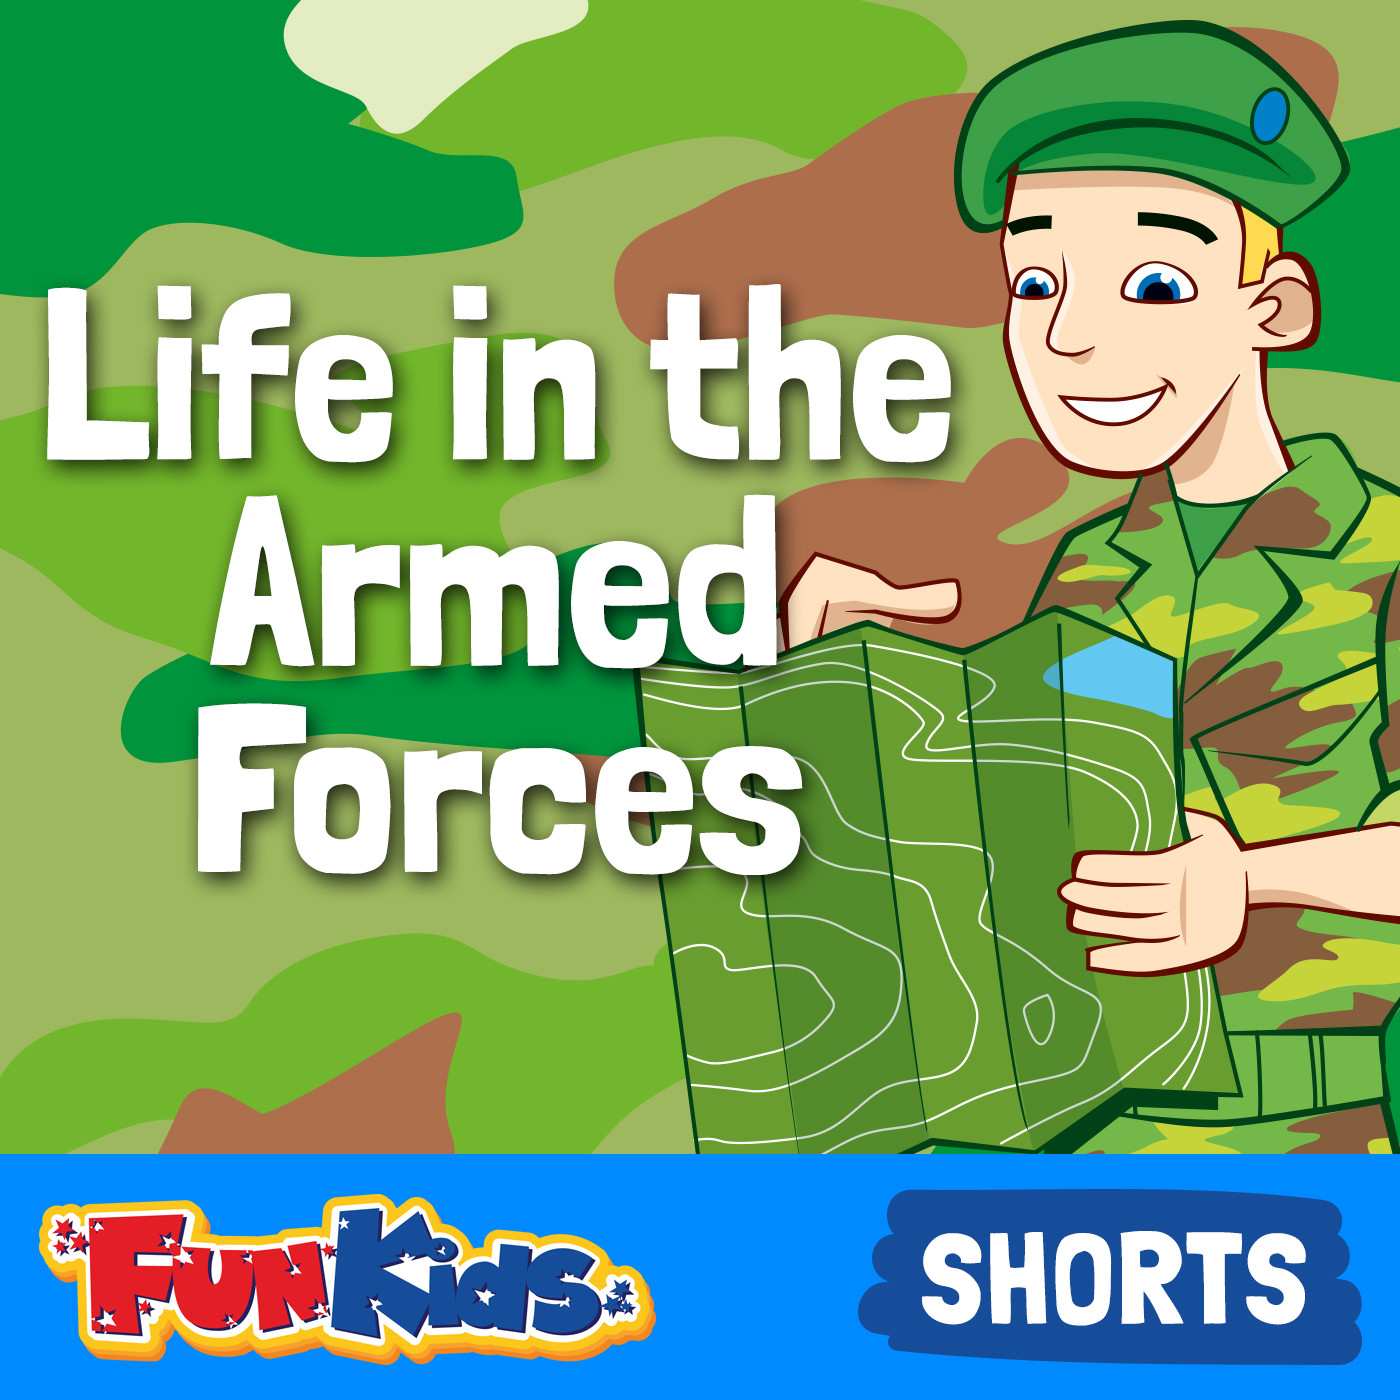 <![CDATA[Life in the Armed Forces]]>